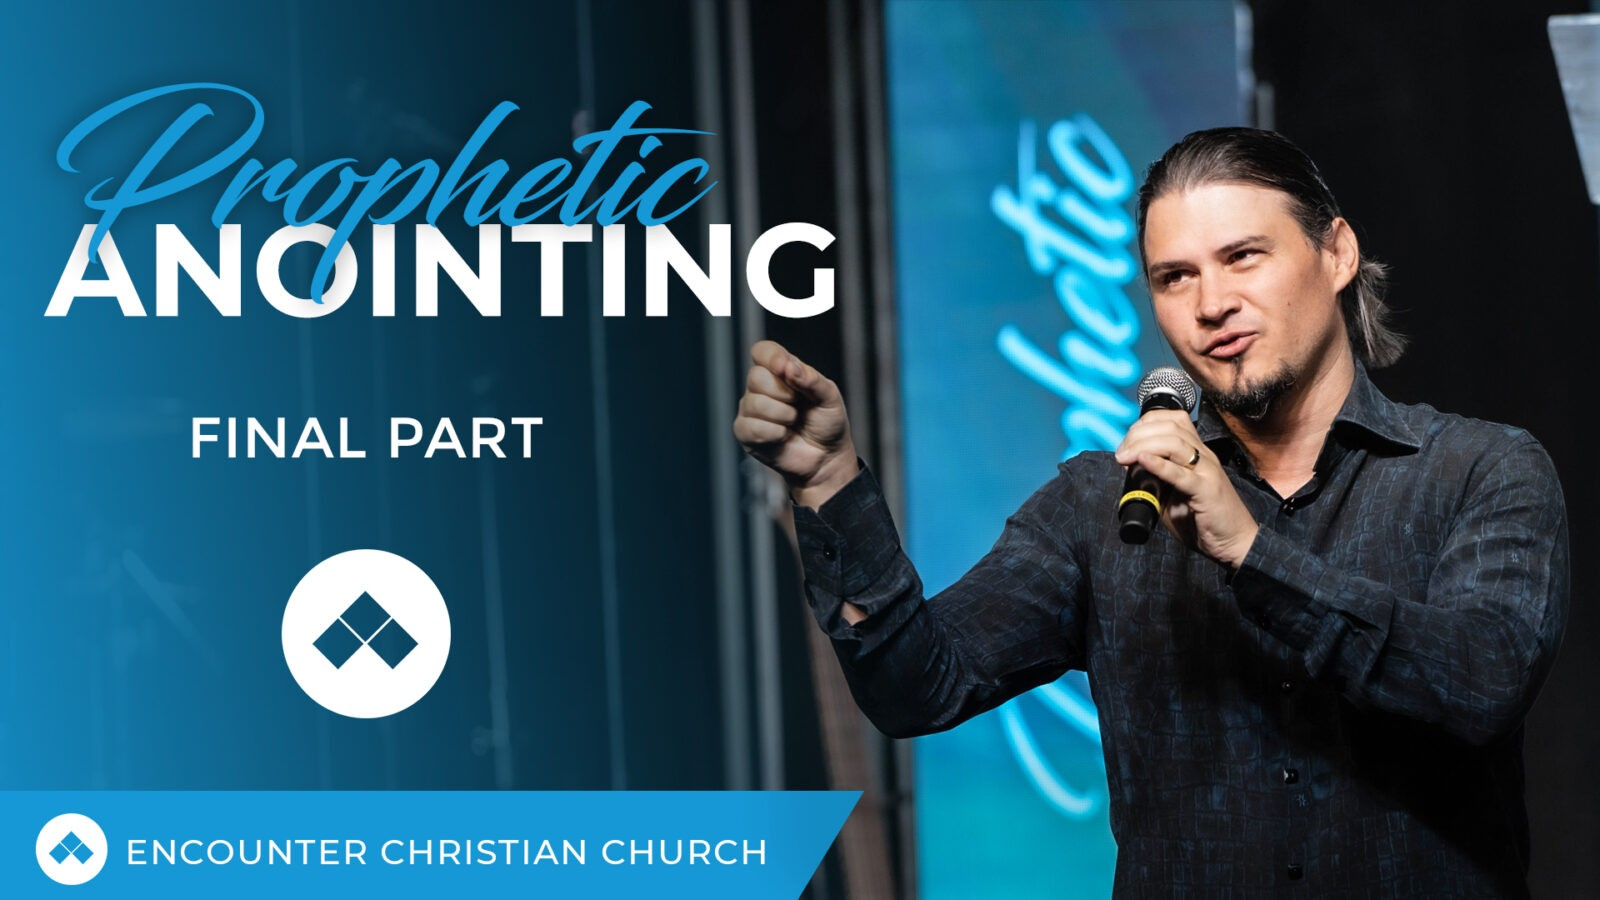 Prophetic Anointing Final Part